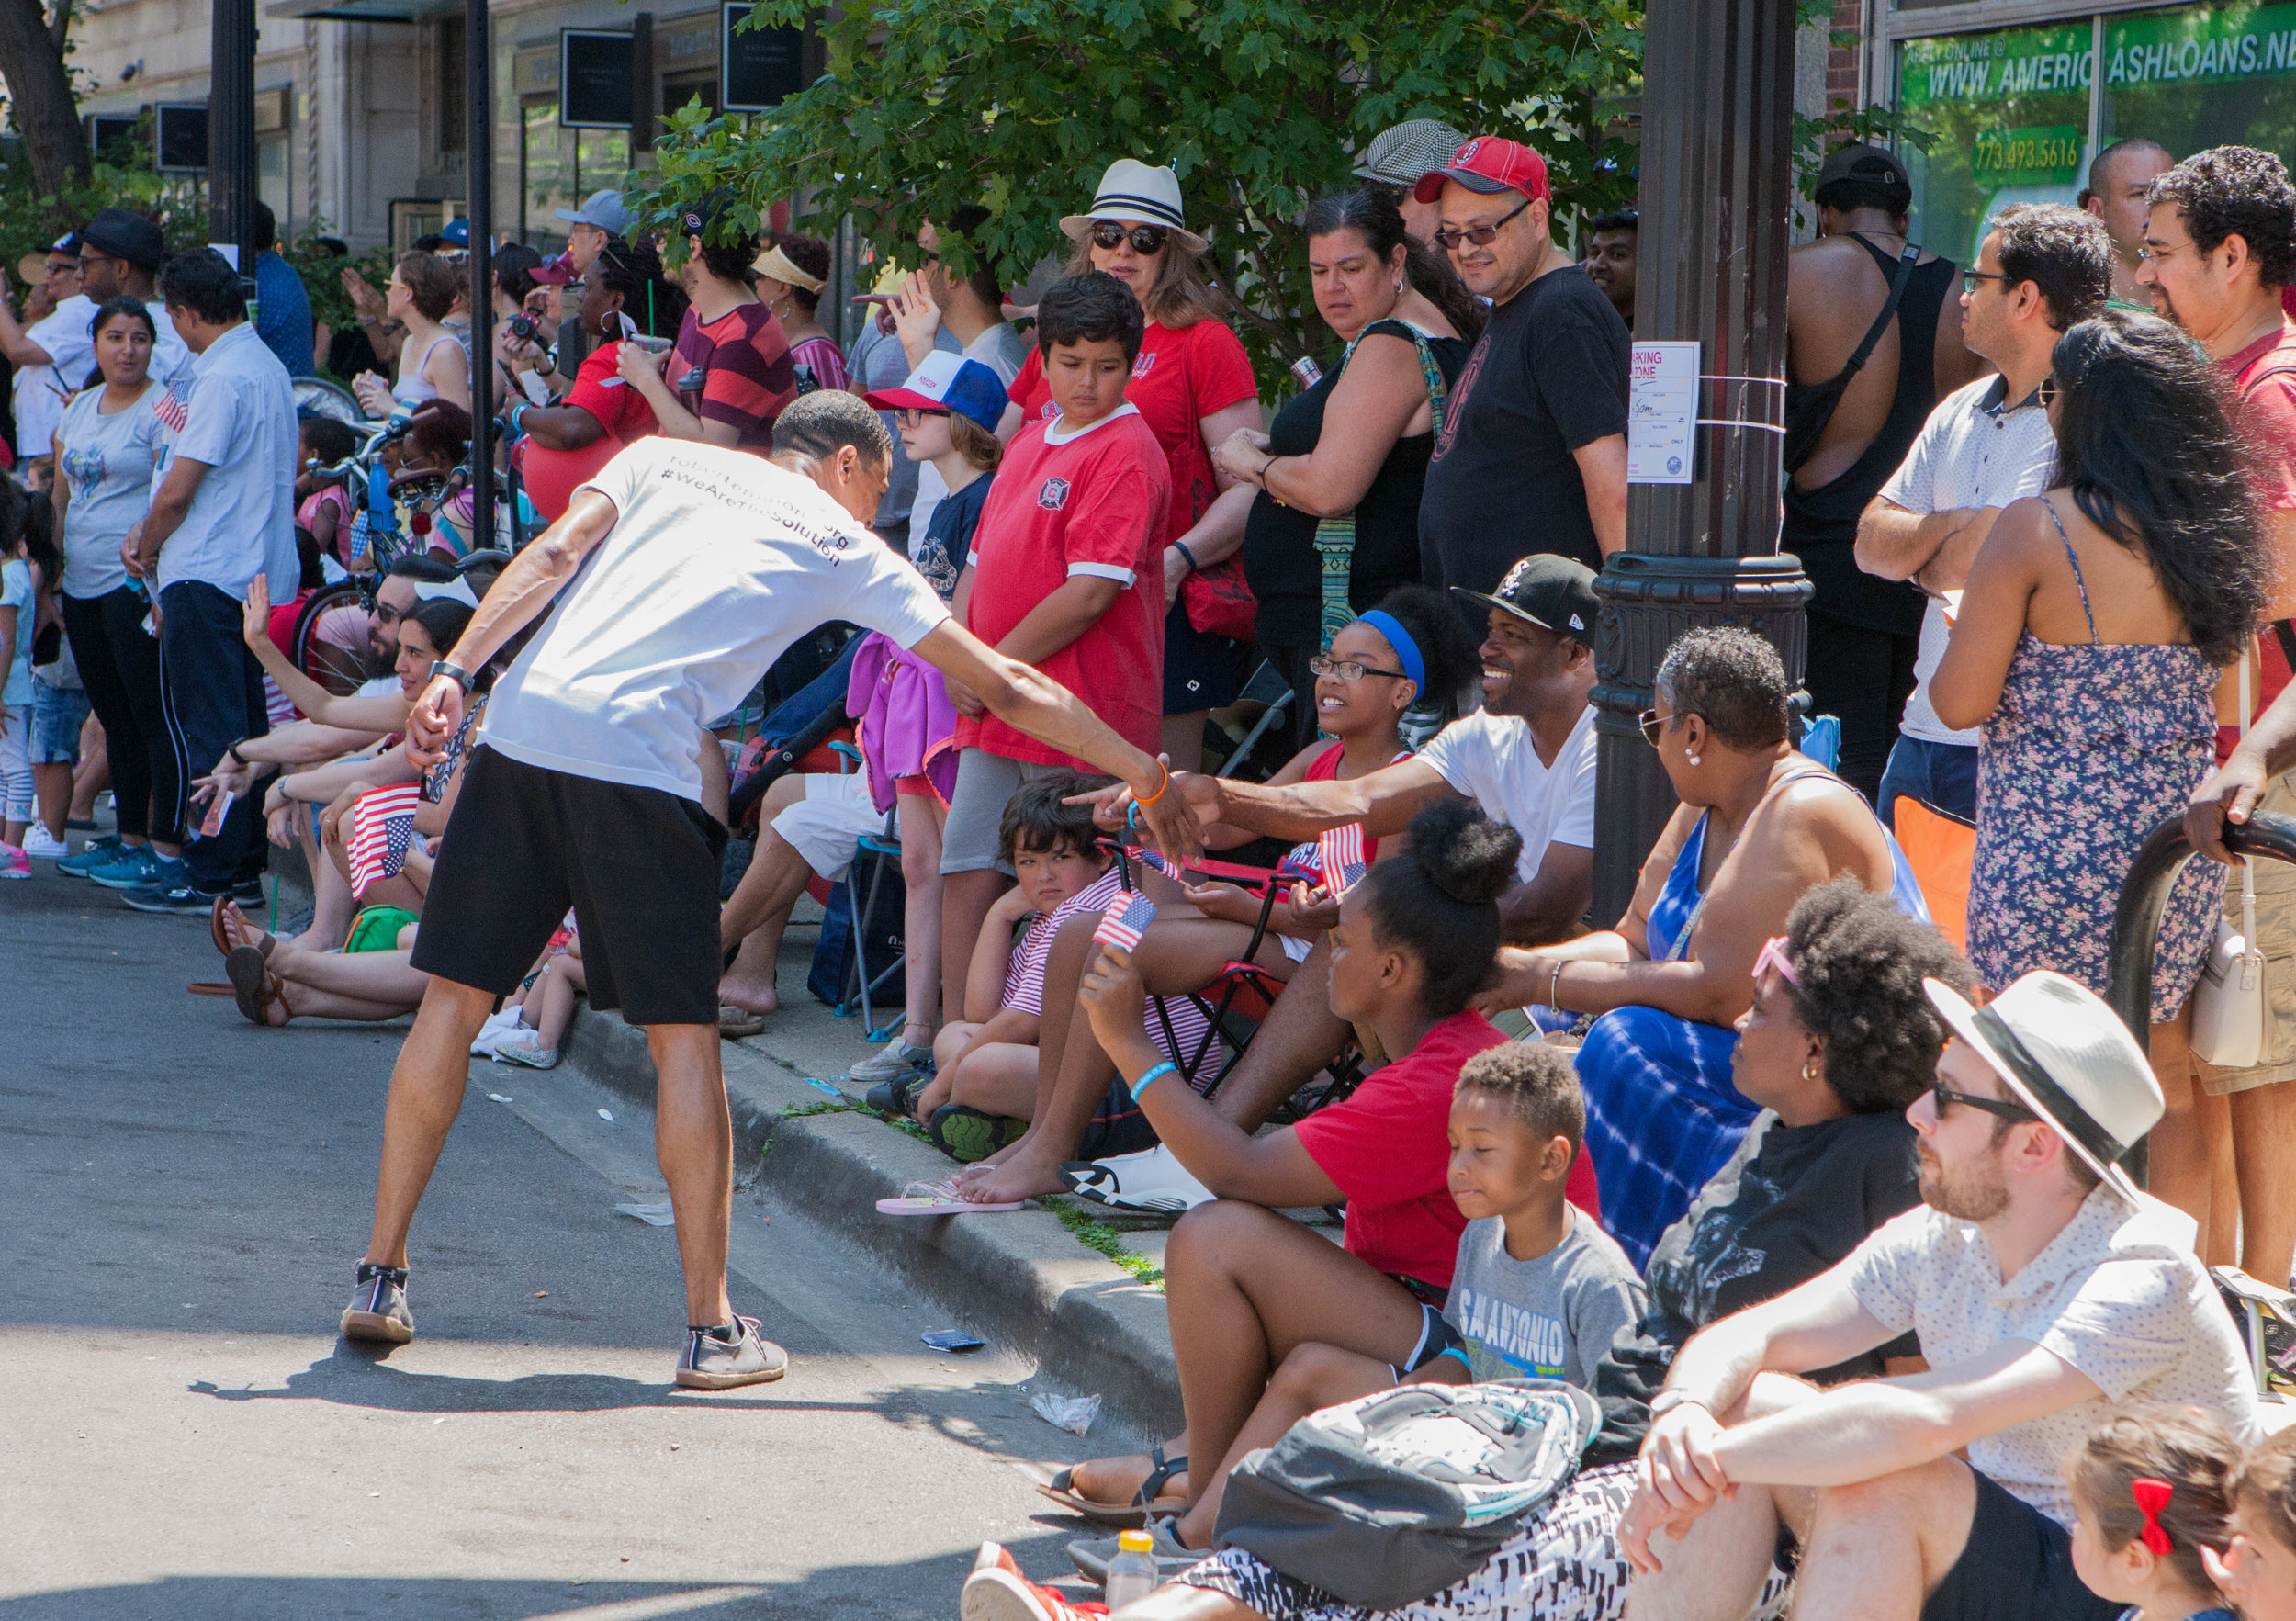 Robert reaches into a crowd on onlookers to shake a man's hand at the 4th on 53rd Parade.